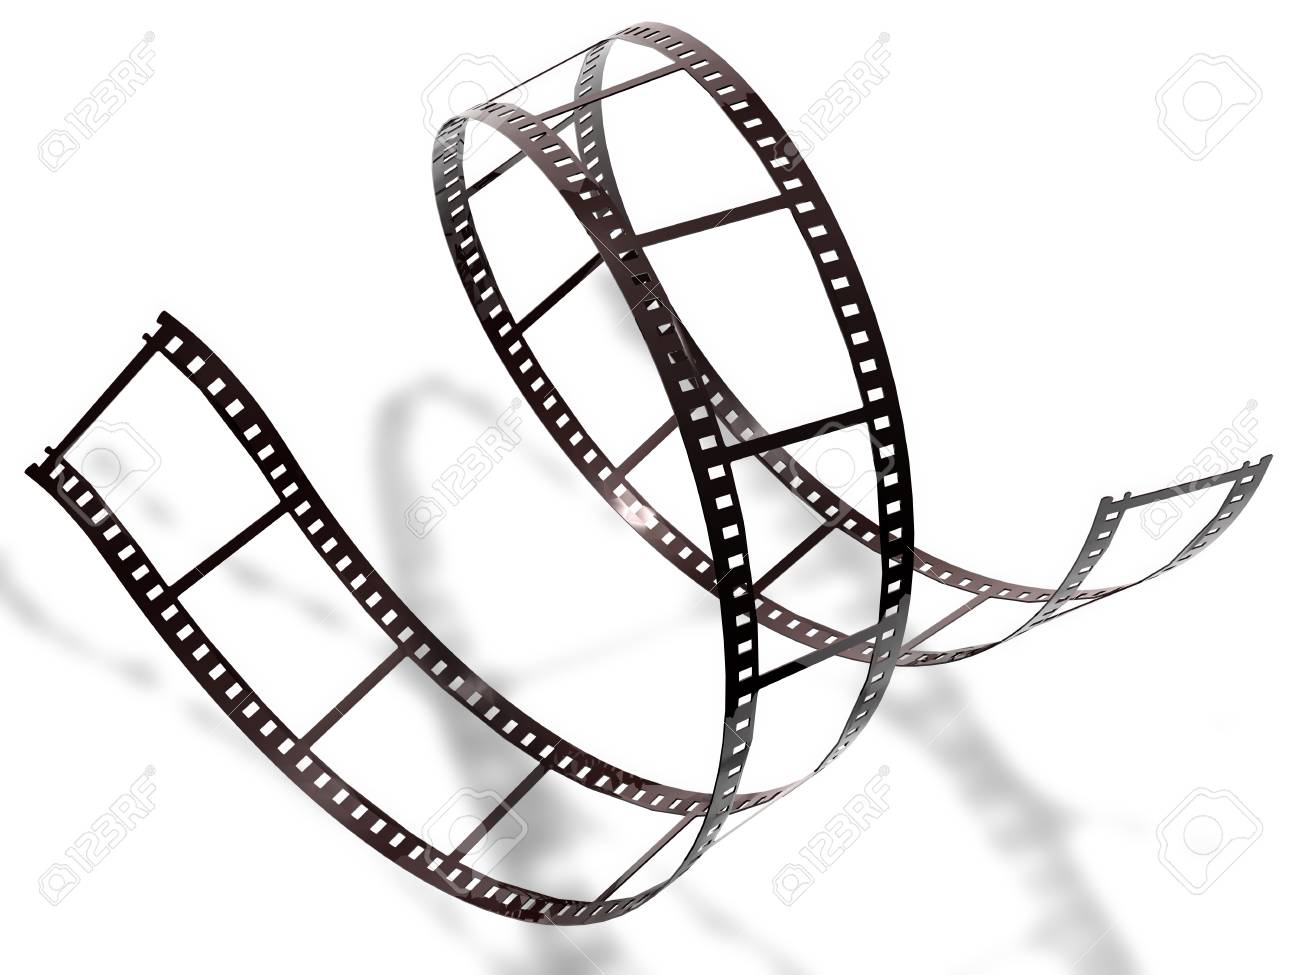 Filmstrip on white background, isolated - 31028084